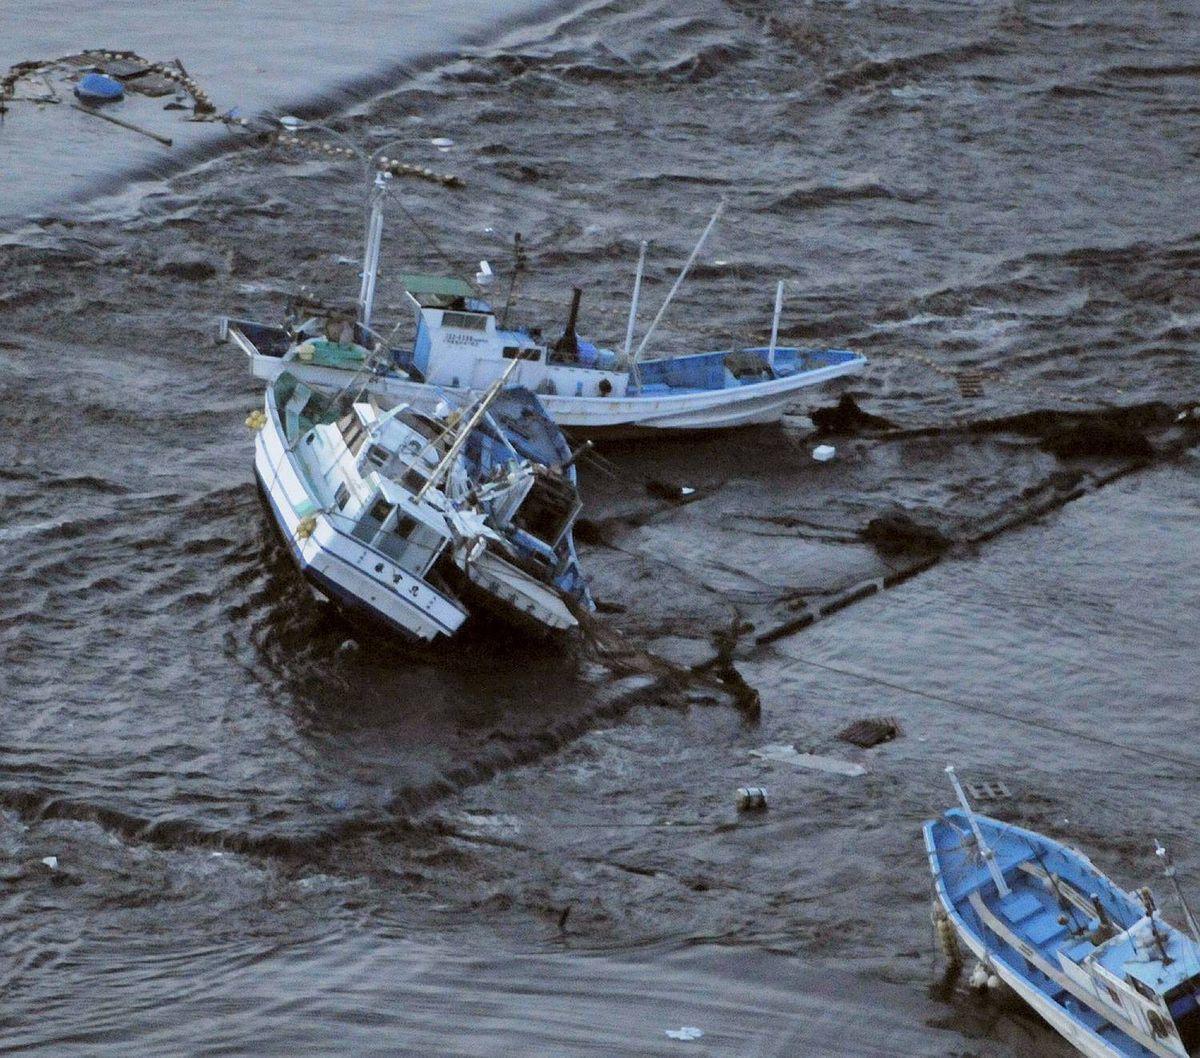 Fishing boats get stranded on shore at Oarai town, Ibaraki prefecture, Japan, after a ferocious tsunami spawned by one of the largest earthquakes ever recorded slammed Japan's eastern coasts on March 11, 2011.